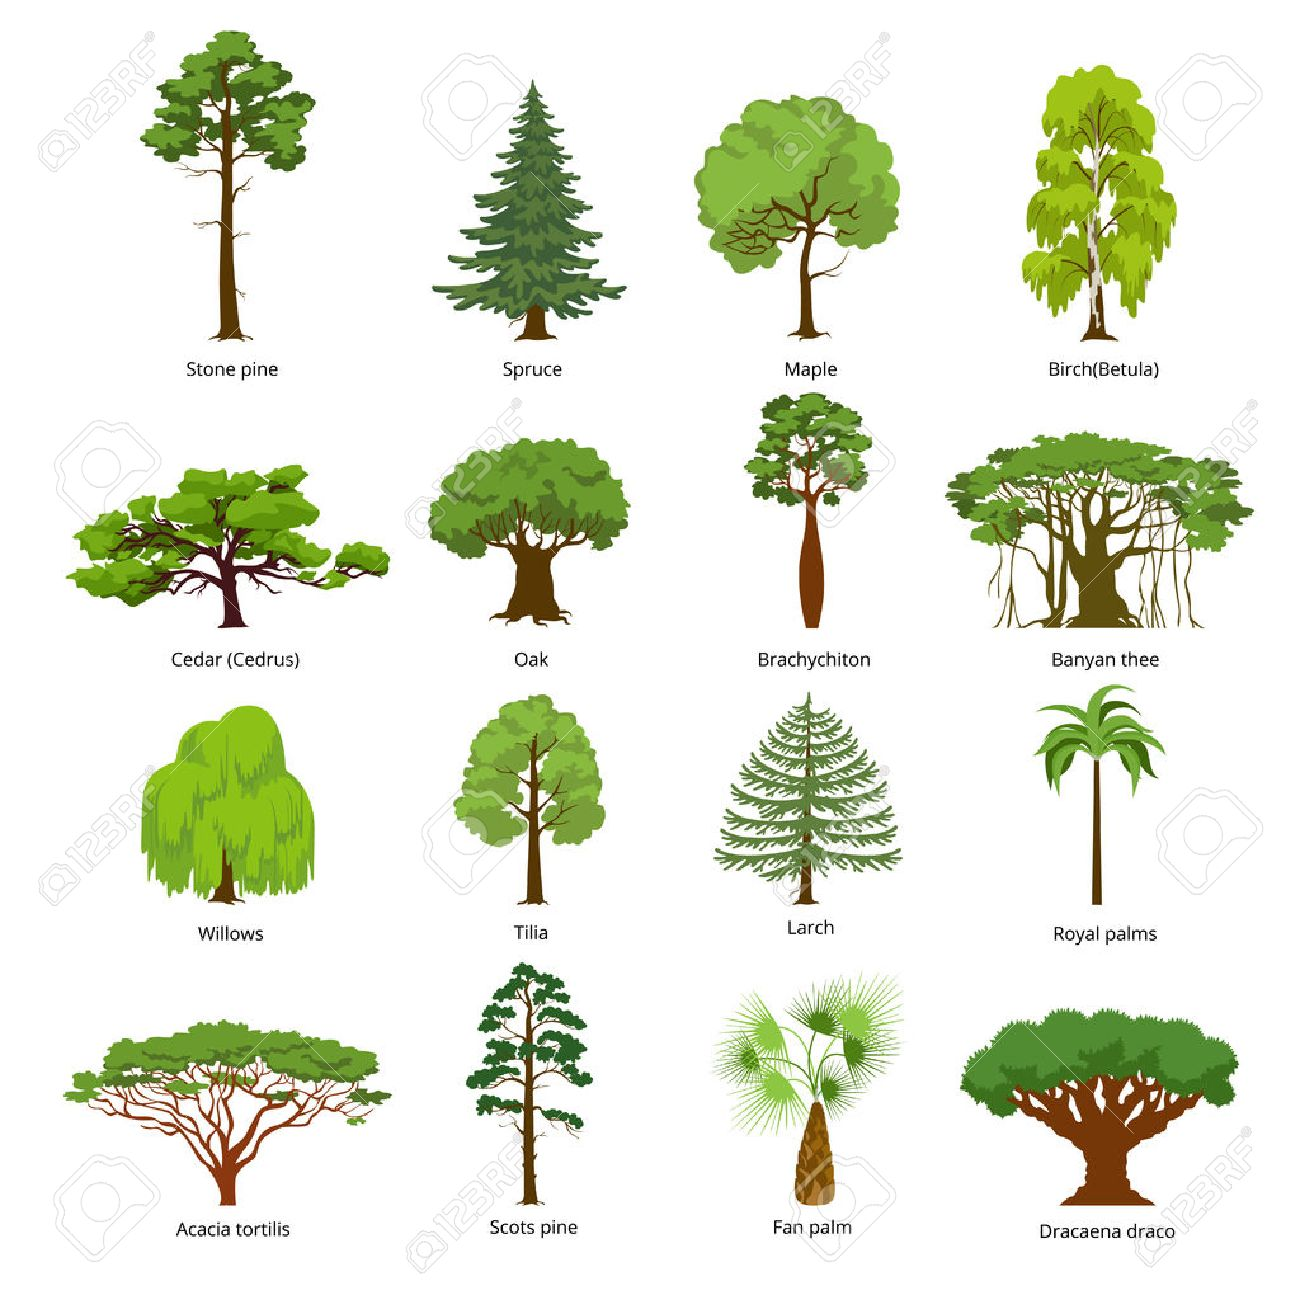 Flat green trees vector illustration set. Stone pine, spruce, maple, birch, cedar, oak, brachychiton, banyan, willow, larch, palm, scots pine forest tree icons. Nature concept. - 72686931